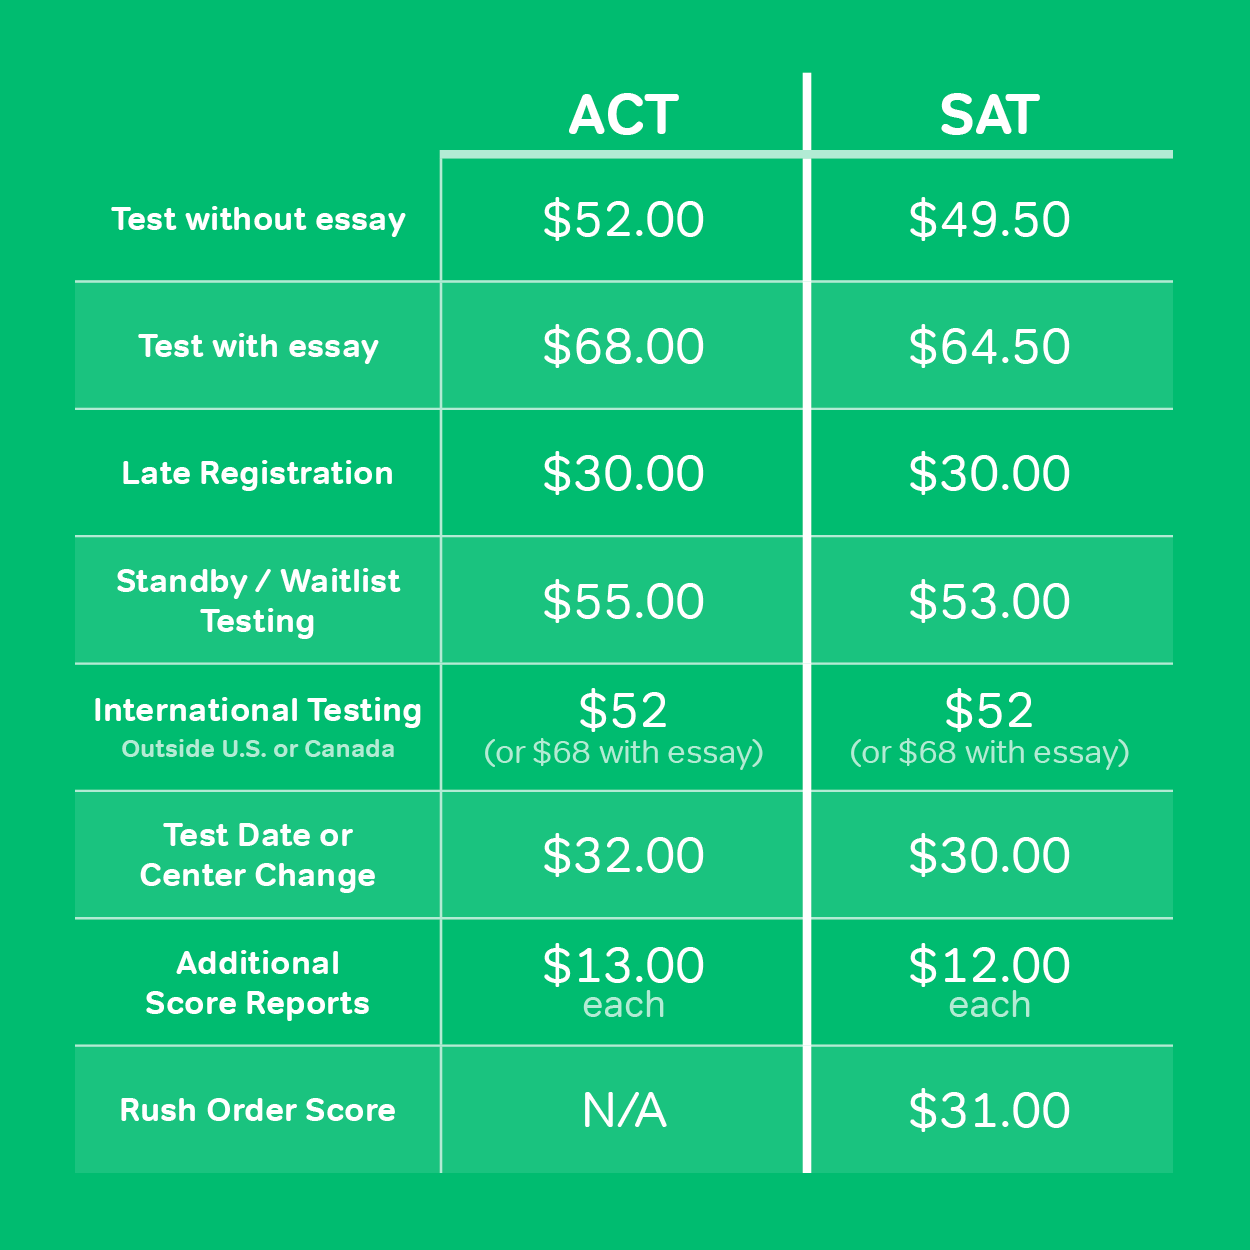 Magoosh ACT SAT Pricing Chart